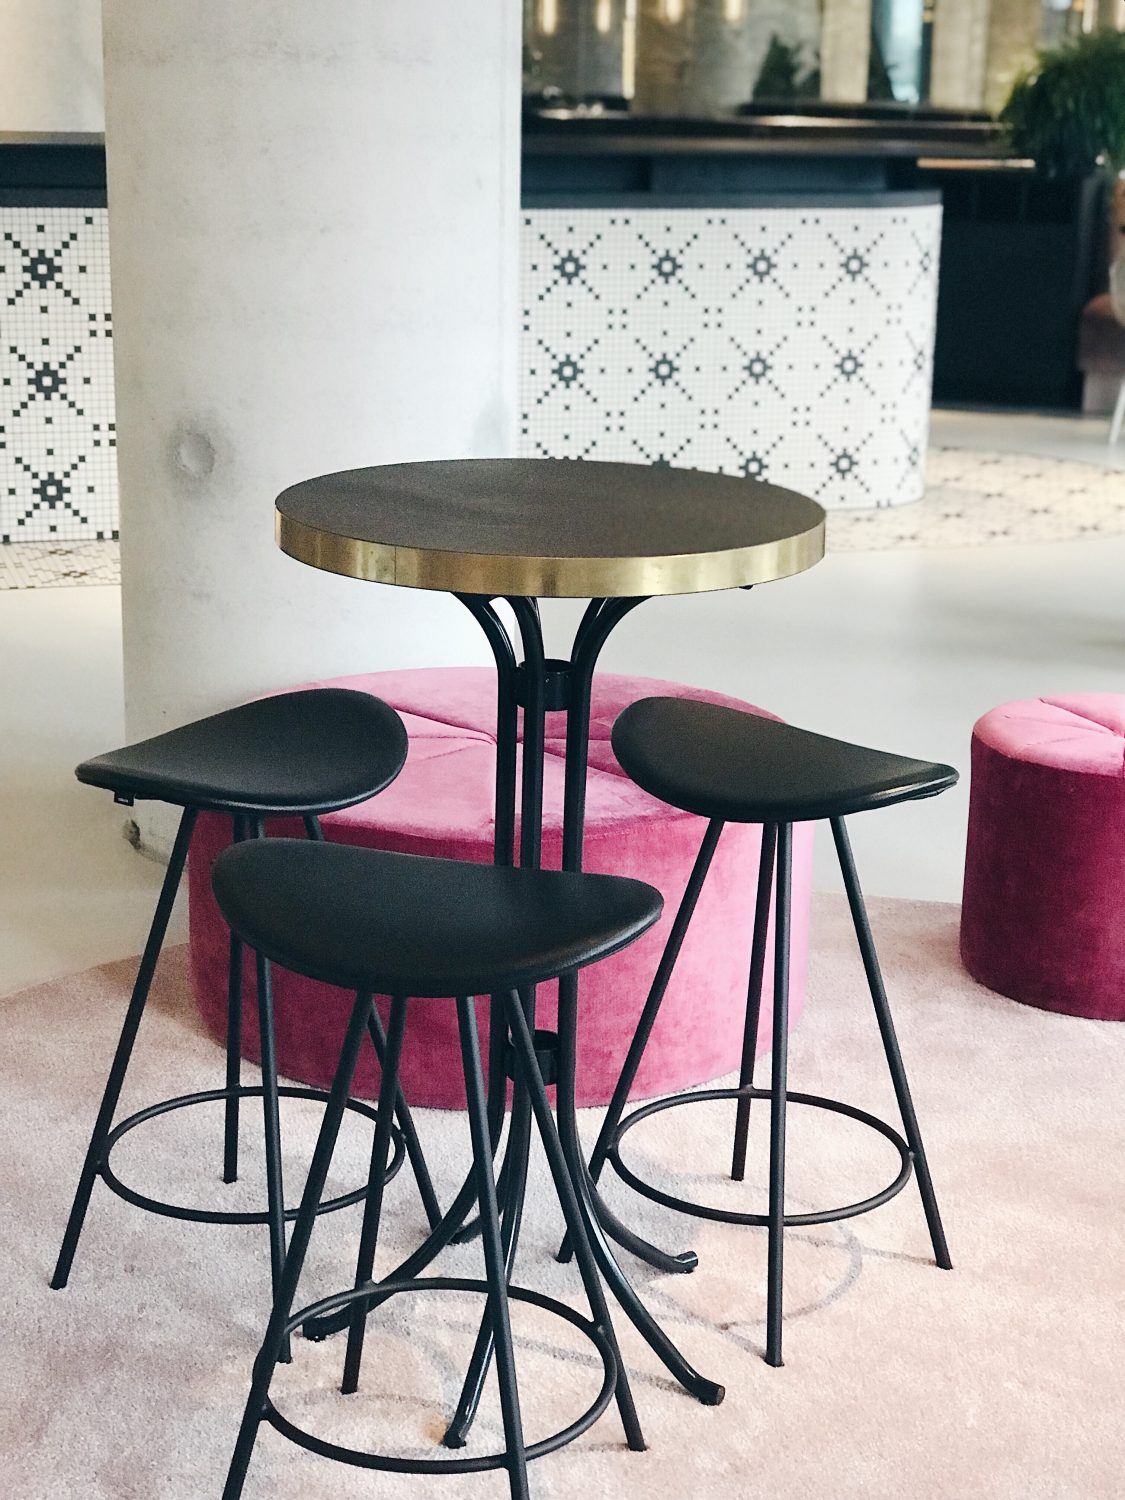 hotel qo amsterdam table and chairs